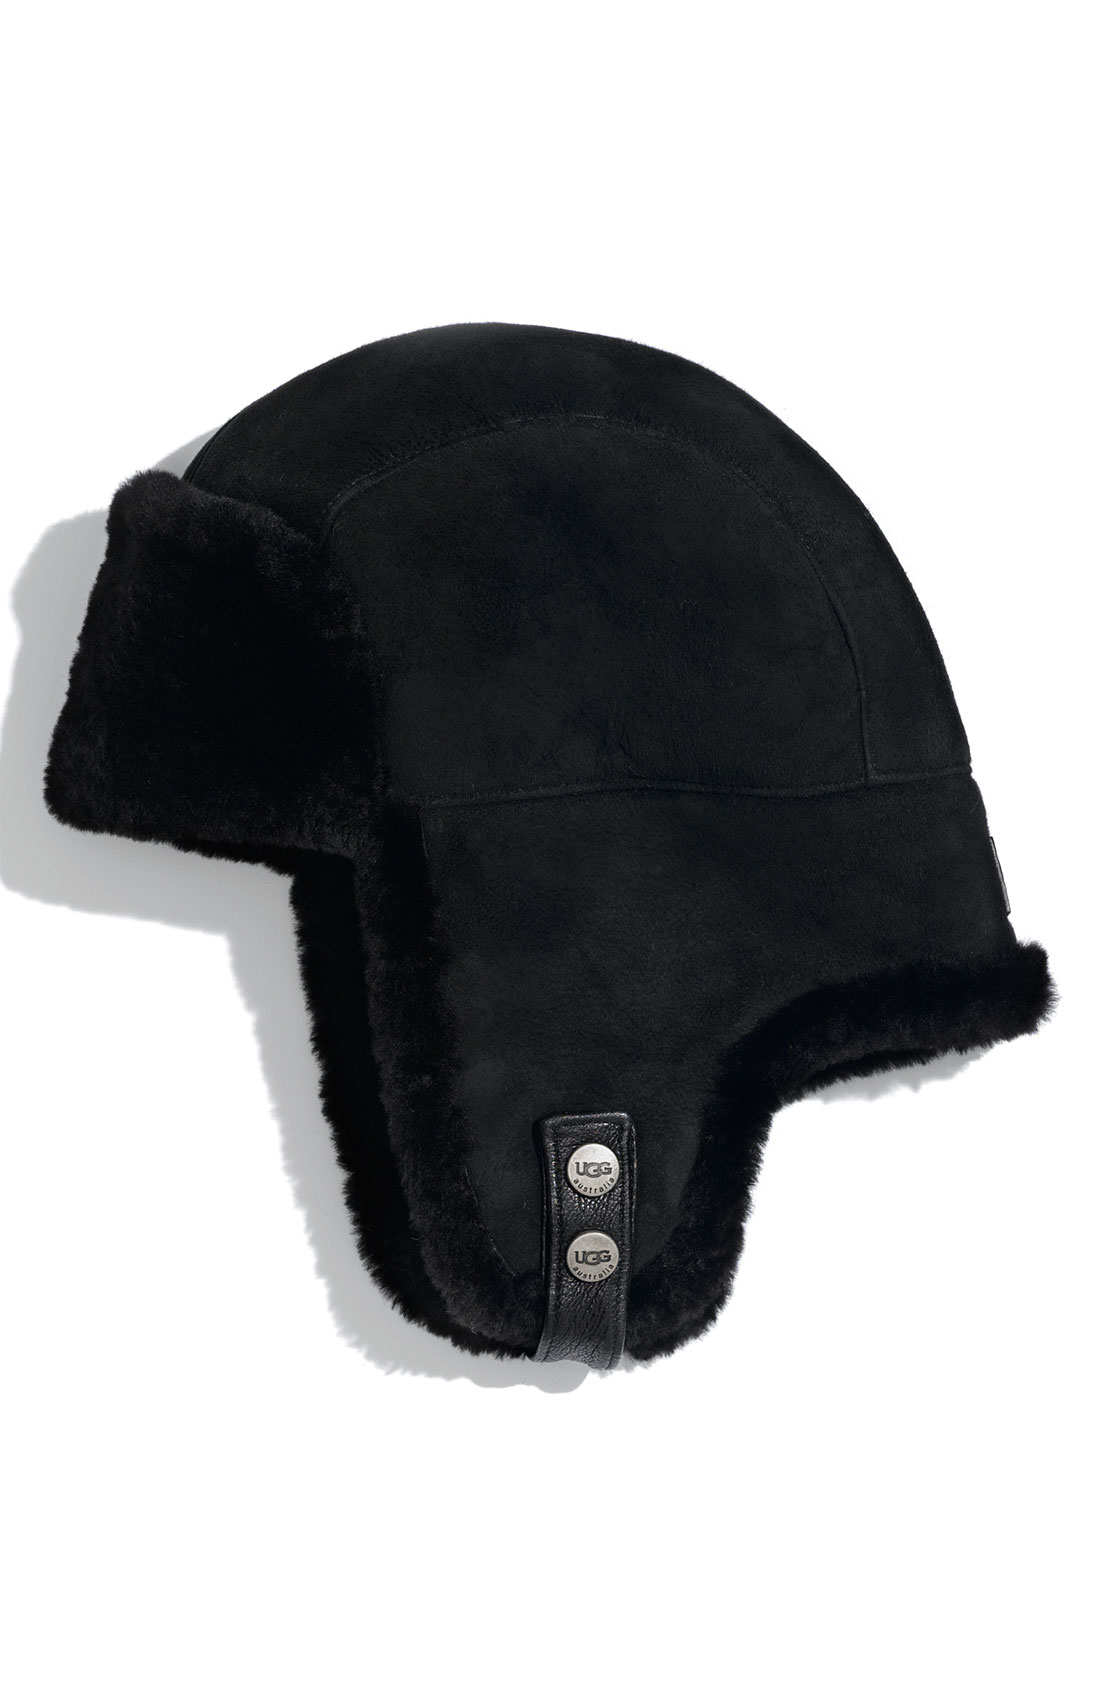 5dee6f184ce7f Ugg Mens Shearling Trapper Hat - cheap watches mgc-gas.com